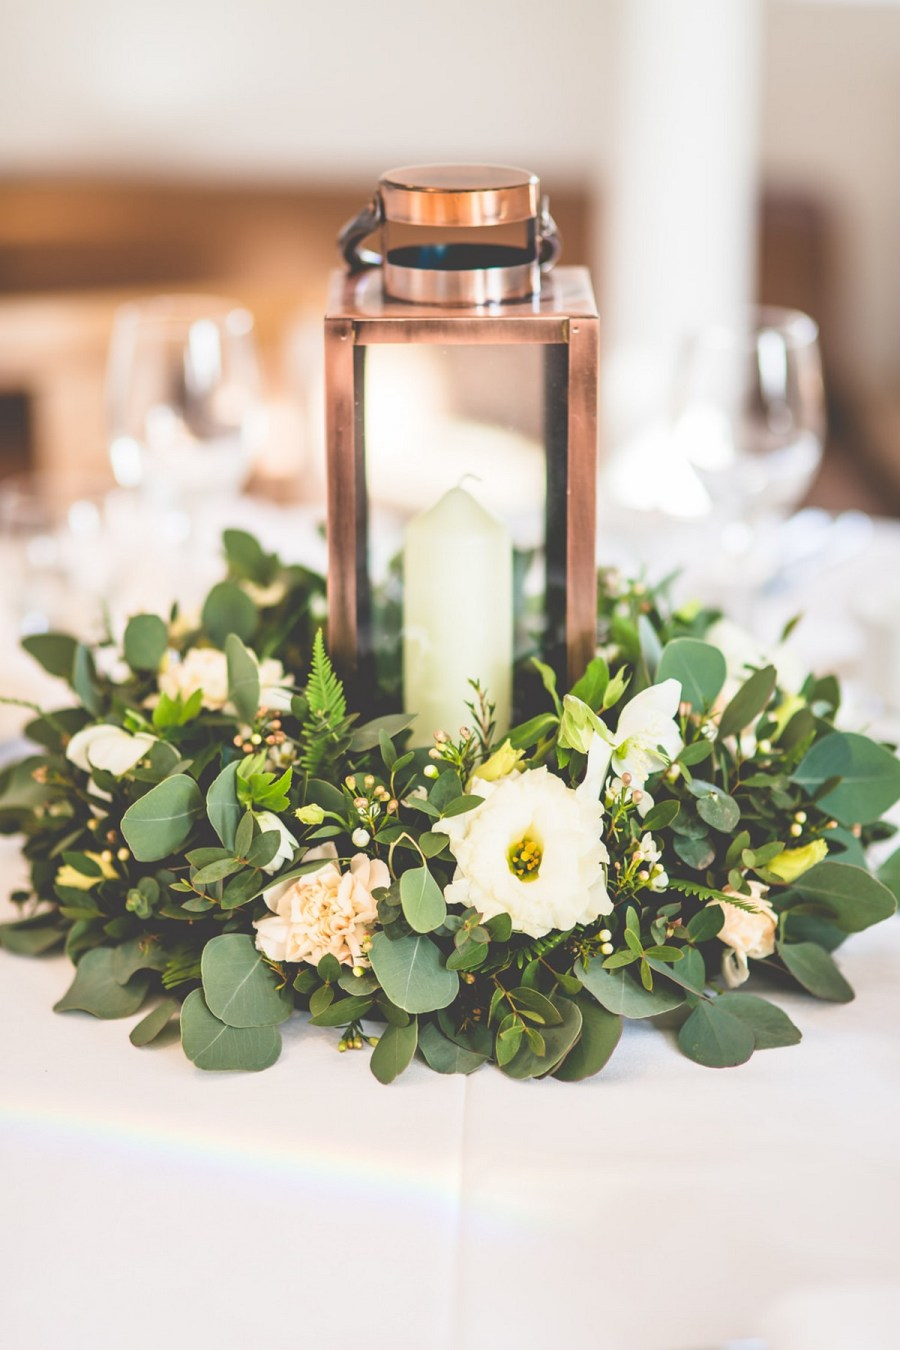 Not only do these floral wreaths make epic ceremony backdrops, they can be crafted into monograms and incorporated to get that organic-meets-boho wedding look.